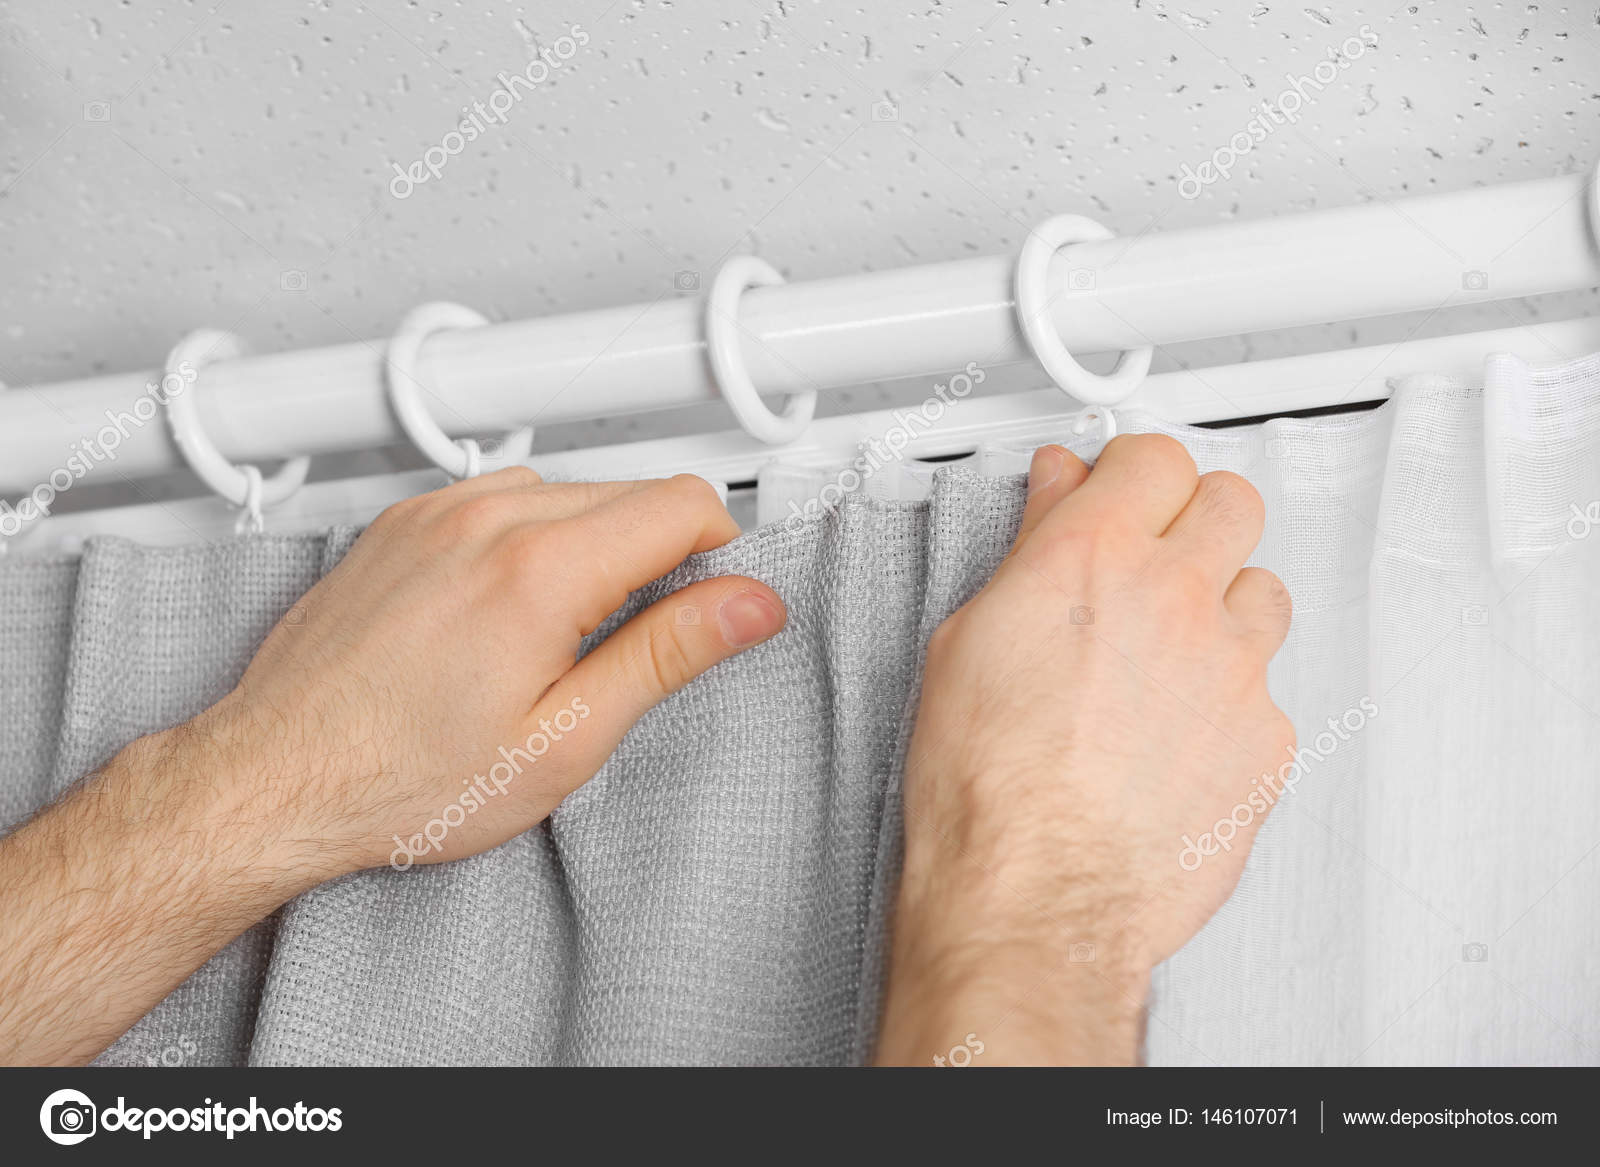 Hands Installing Curtains U2014 Stock Photo #146107071